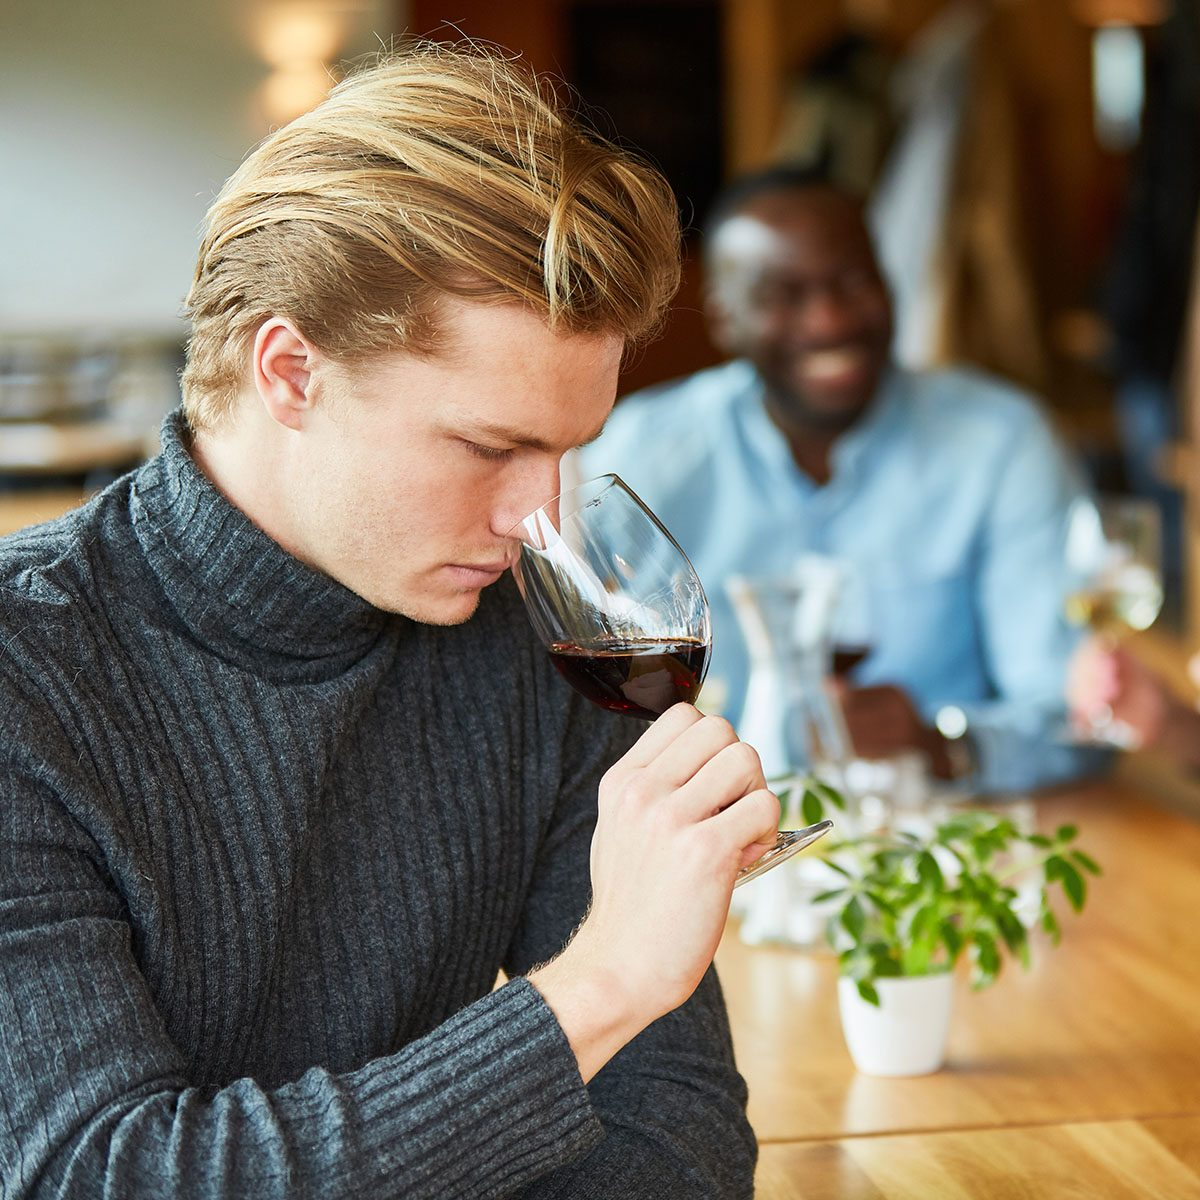 Young man at a wine tasting with a glass of red wine checks the bouquet